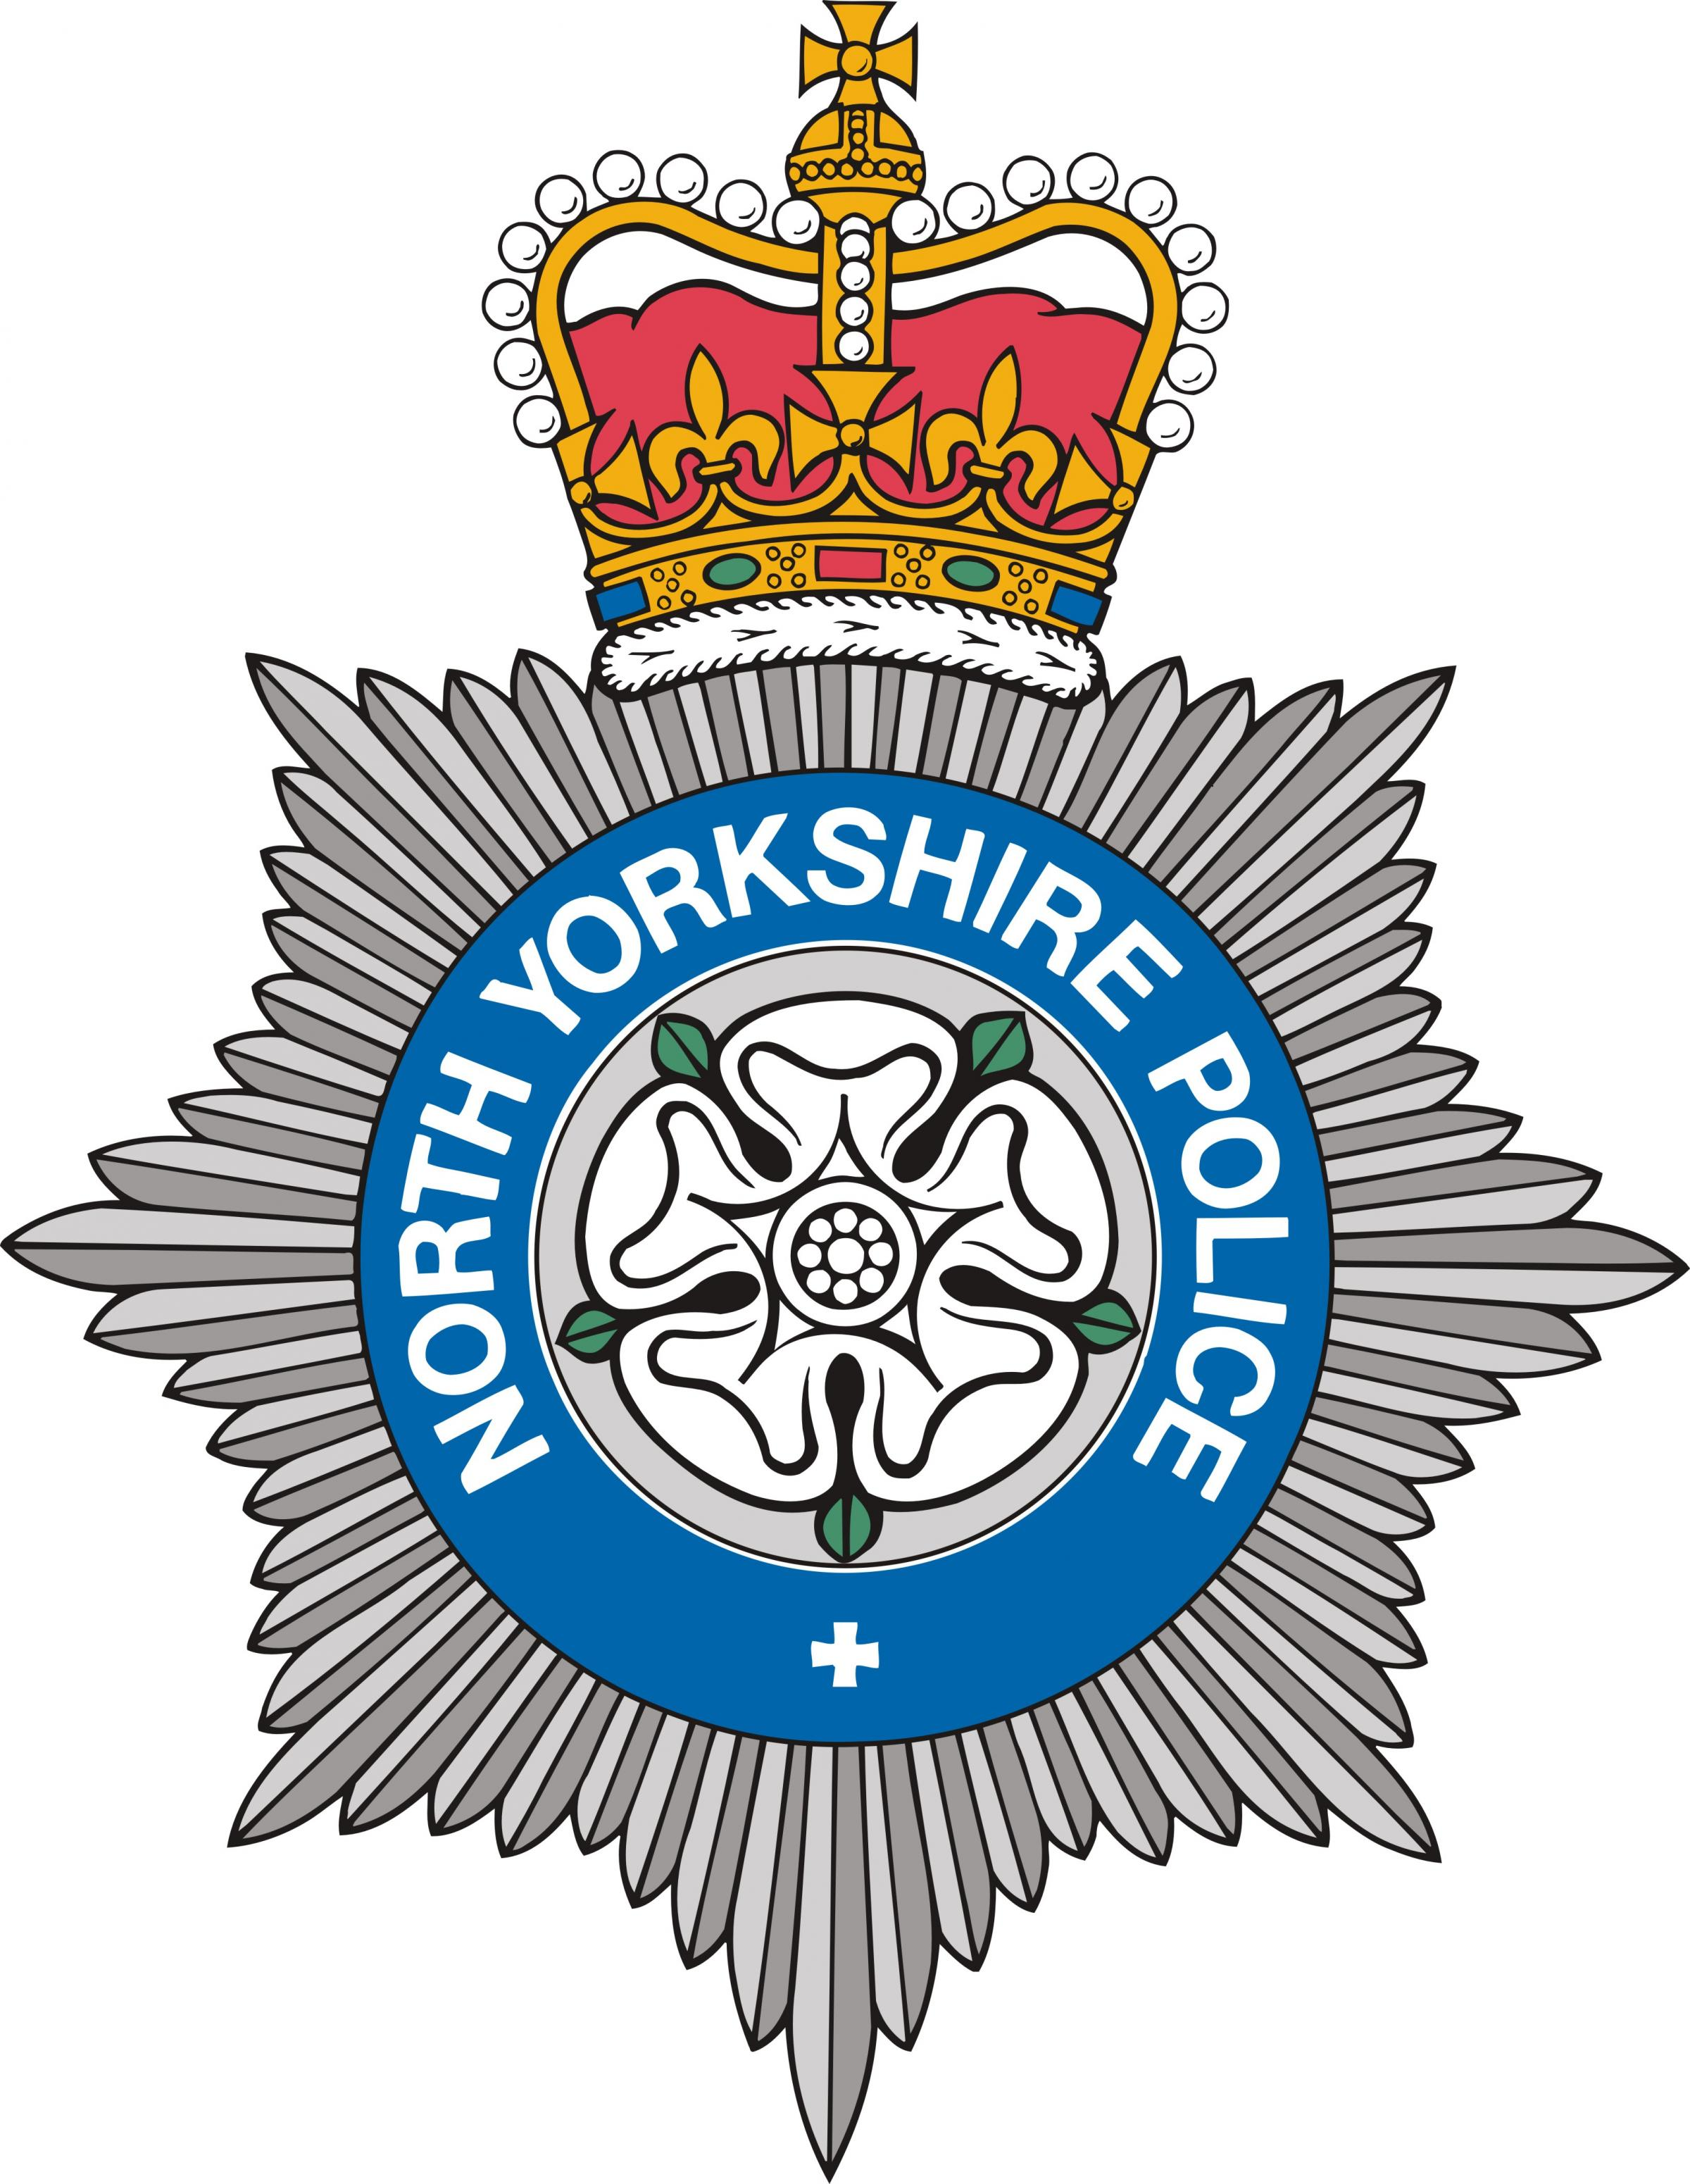 North Yorkshire Police are appealing for witnesses